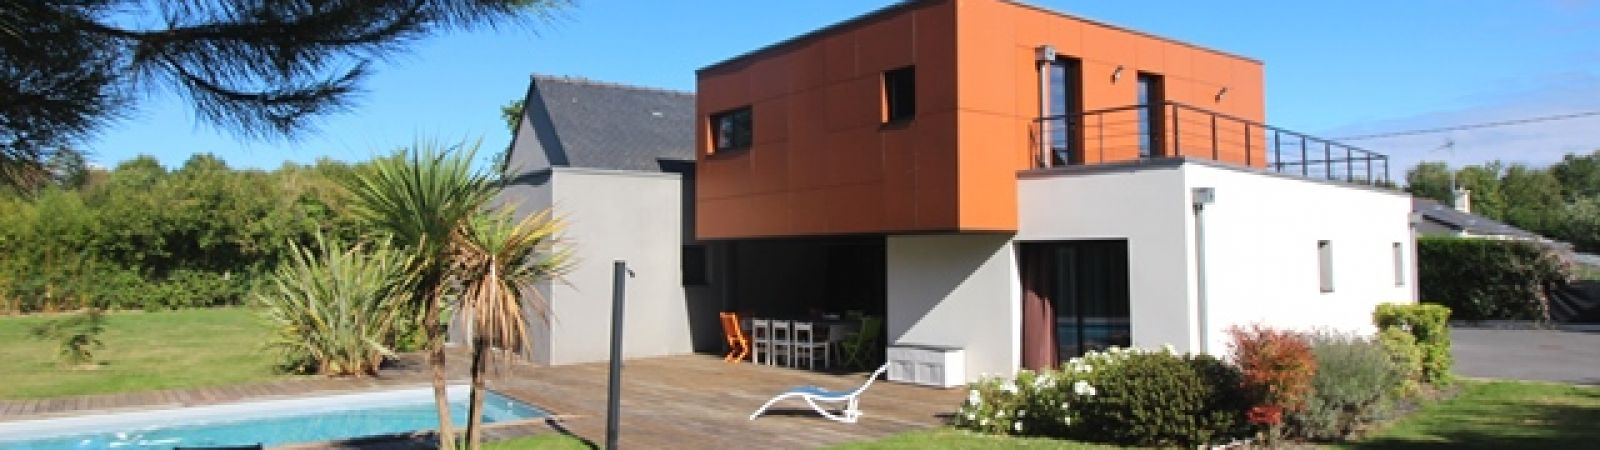 photo 1: Superbe maison d'architecte!